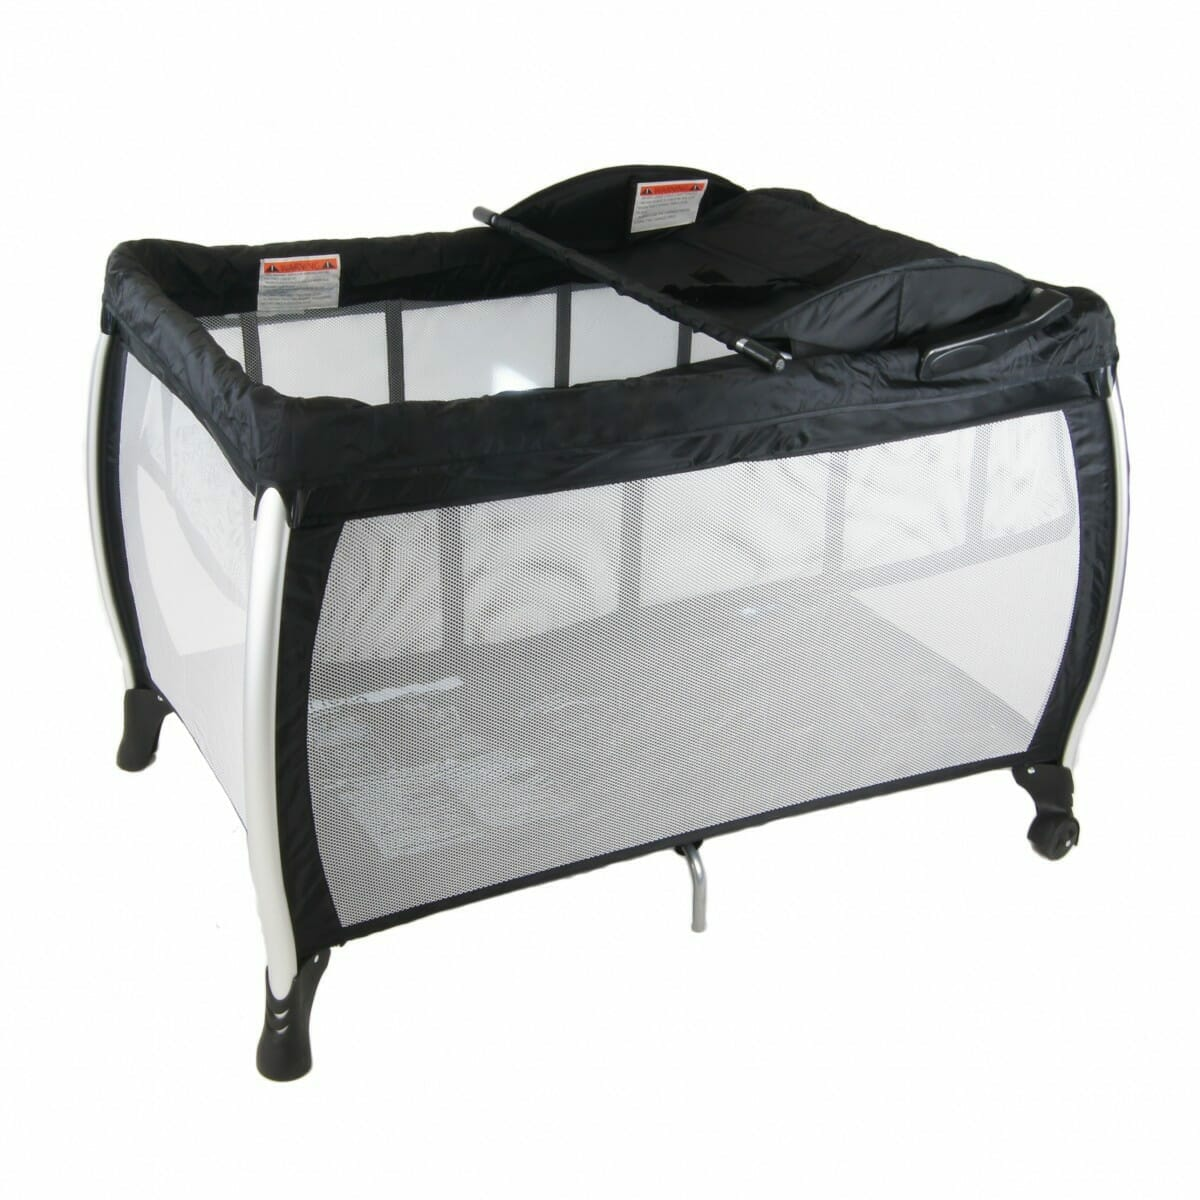 in me phil happy comfy crib sleep and cot baby lightweight travel portacot cribs portable buy super traveller teds